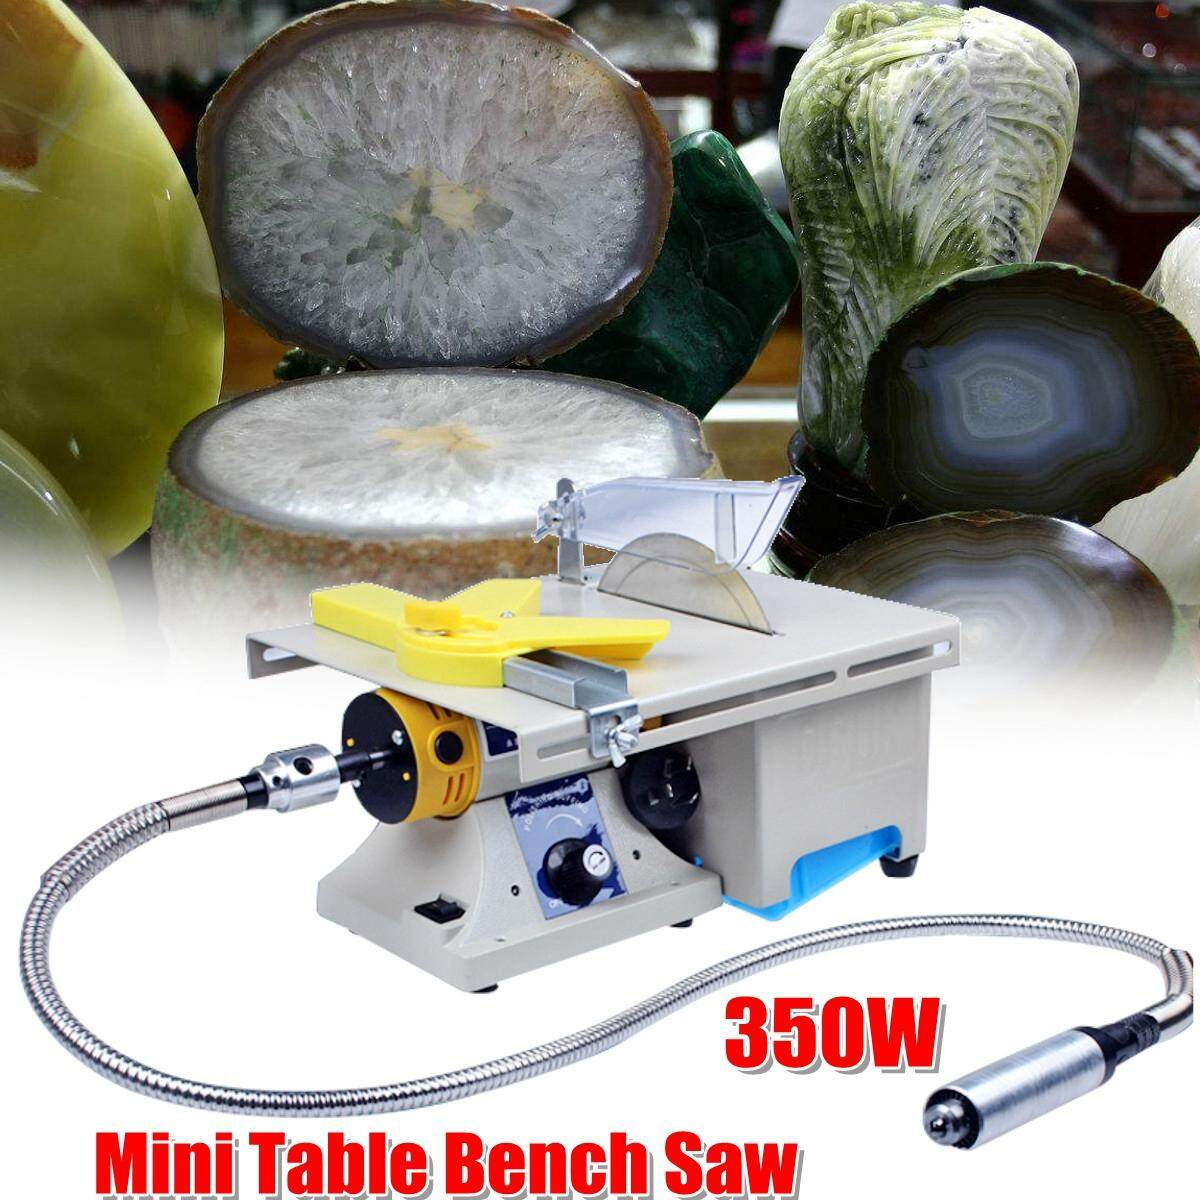 【Free Shipping + Flash Deal】350W Mini Table Bench Saw Electric Grinding Engraving Machine Jade Wood Stone Polishing Router For Bodhi Ivory Carving Polisher